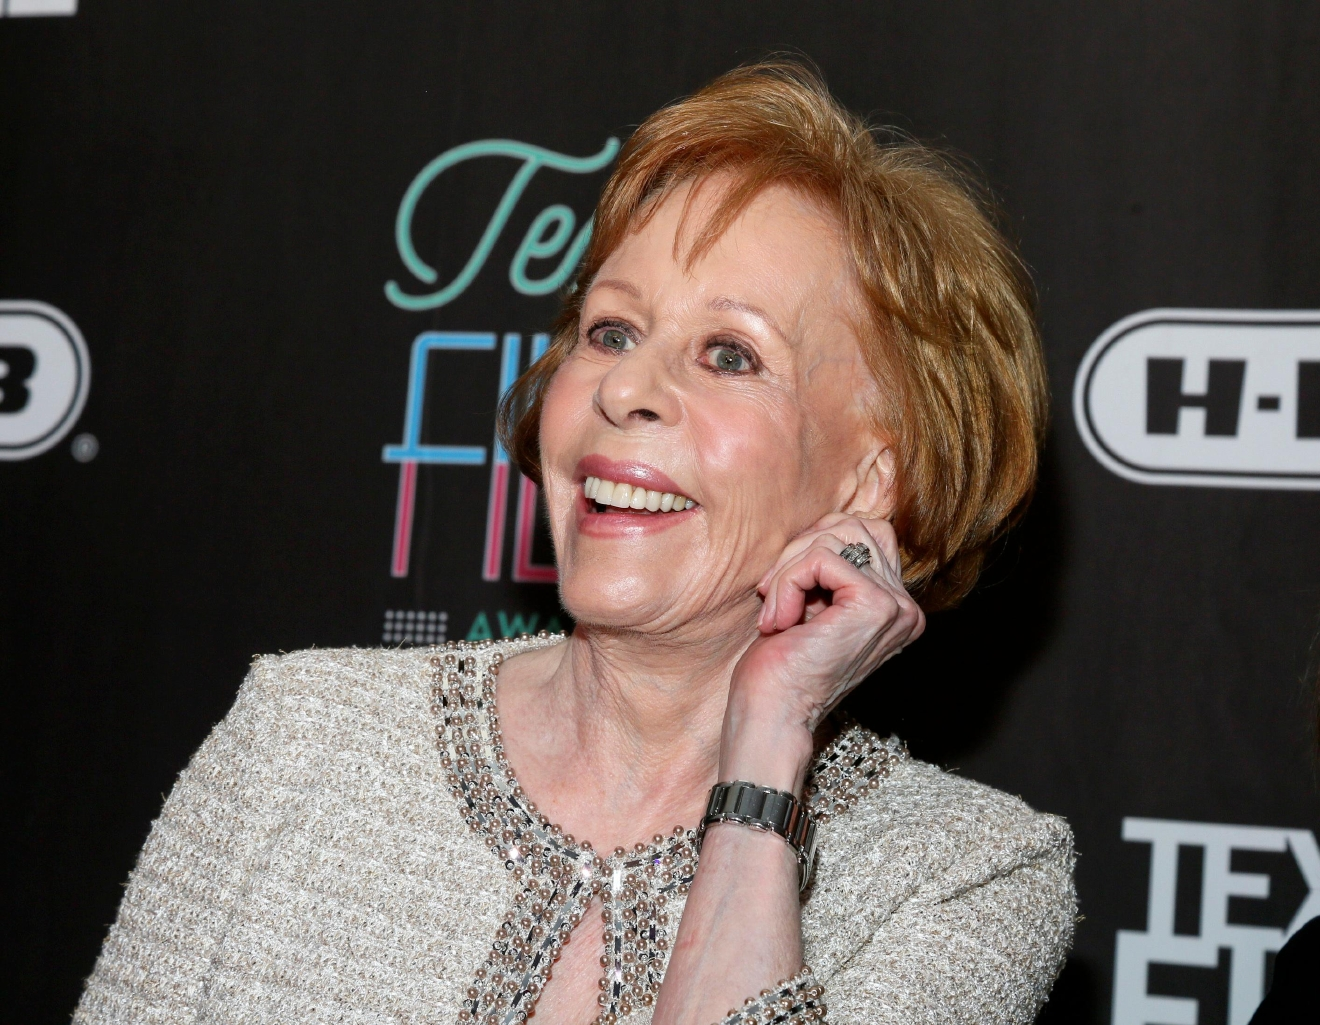 FILE - In this March 10, 2016 file photo, comedian-actress Carol Burnett appears at the 2016 Texas Film Awards at Austin Studios in Austin, Texas. (Photo by Jack Plunkett/Invision/AP, File)